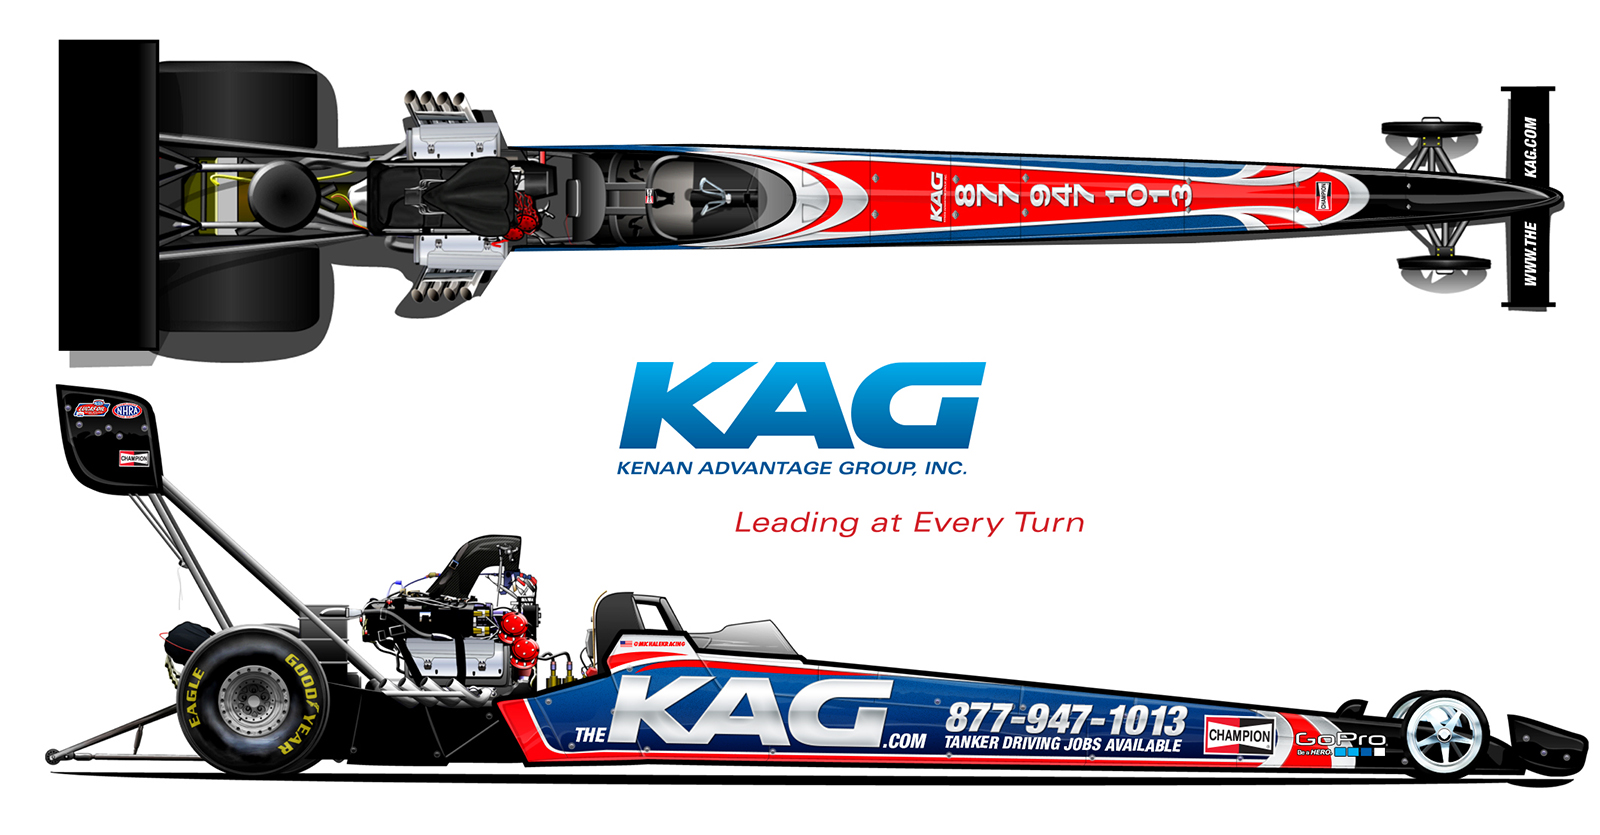 Michalek Brothers Racing will campaign the KAG A/fuel dragster, prepared by Dreher Motorsports, at 3 stops on the 2015 NHRA tour.